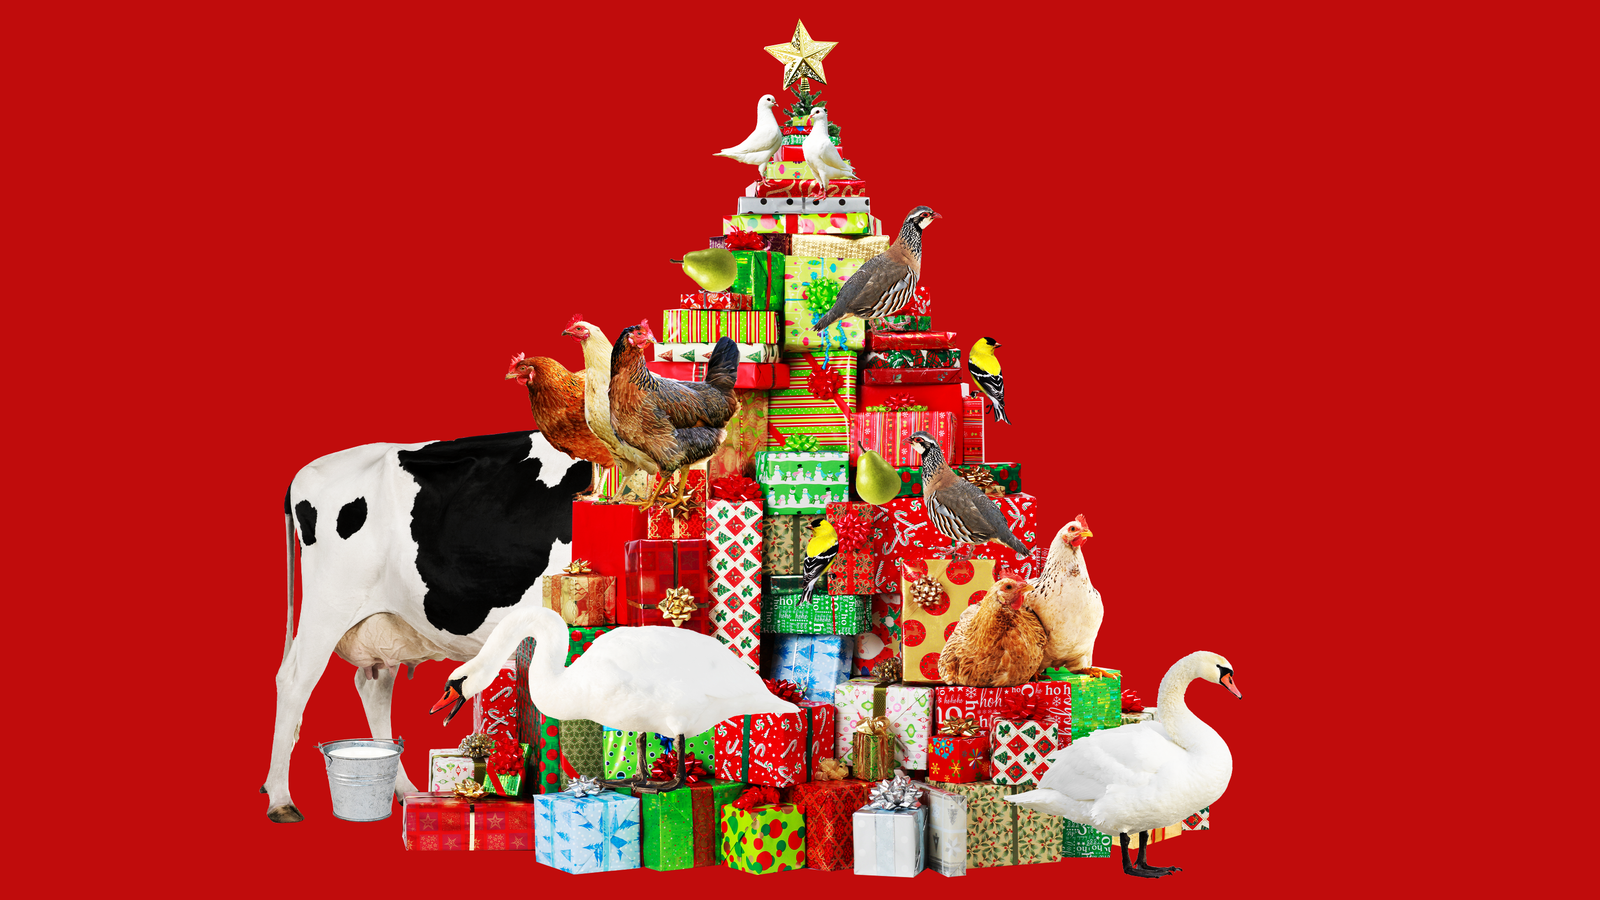 HOLIDAYS ''The 12 Days of Christmas'' Is a Sickening Chronicle of Consumerist Excess